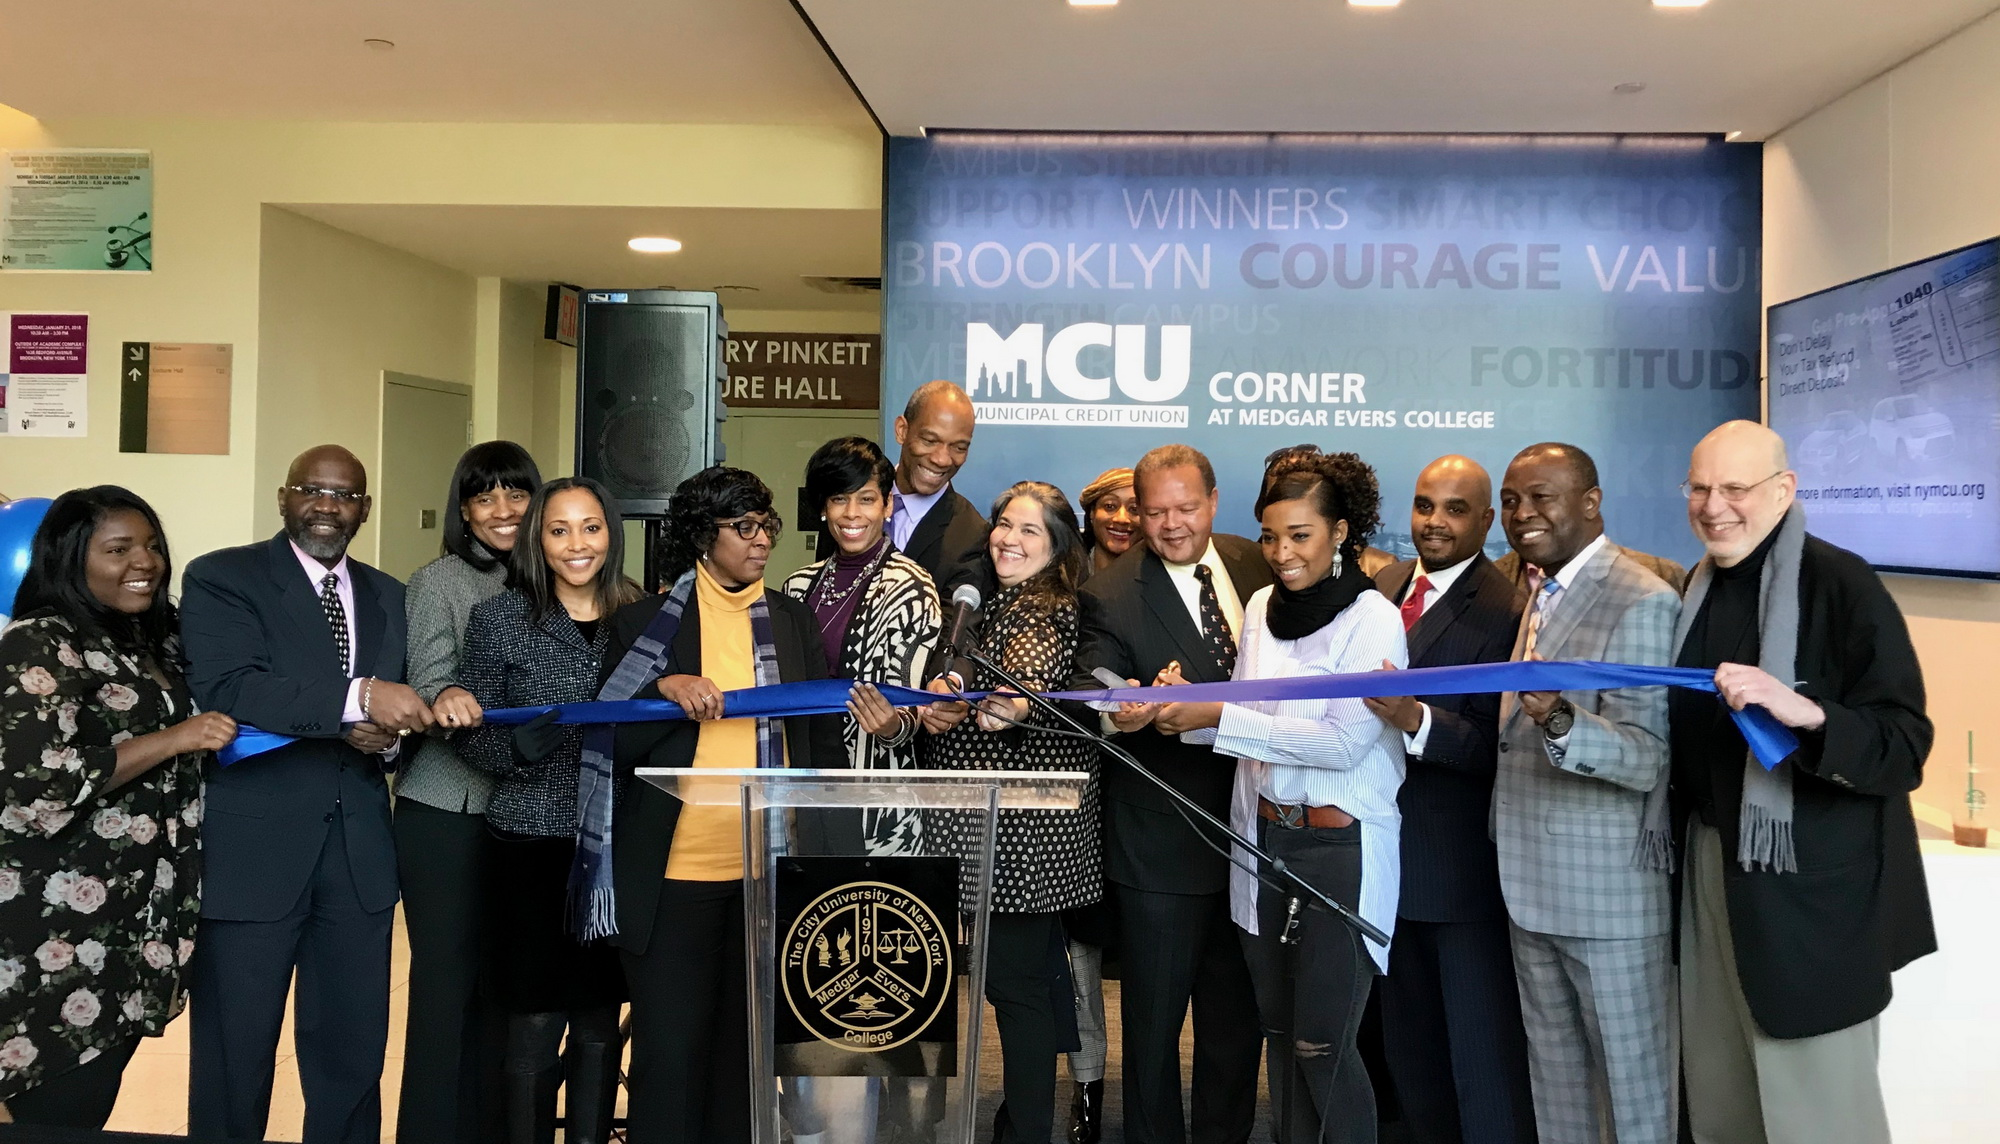 Representatives from Medgar Evers College and Municipal Credit Union cut the ribbon on the new MCU Corner at Medgar Evers College, an interactive banking center designed to provide banking service to the campus community while also serving as a tech-forward common area for students and faculty.